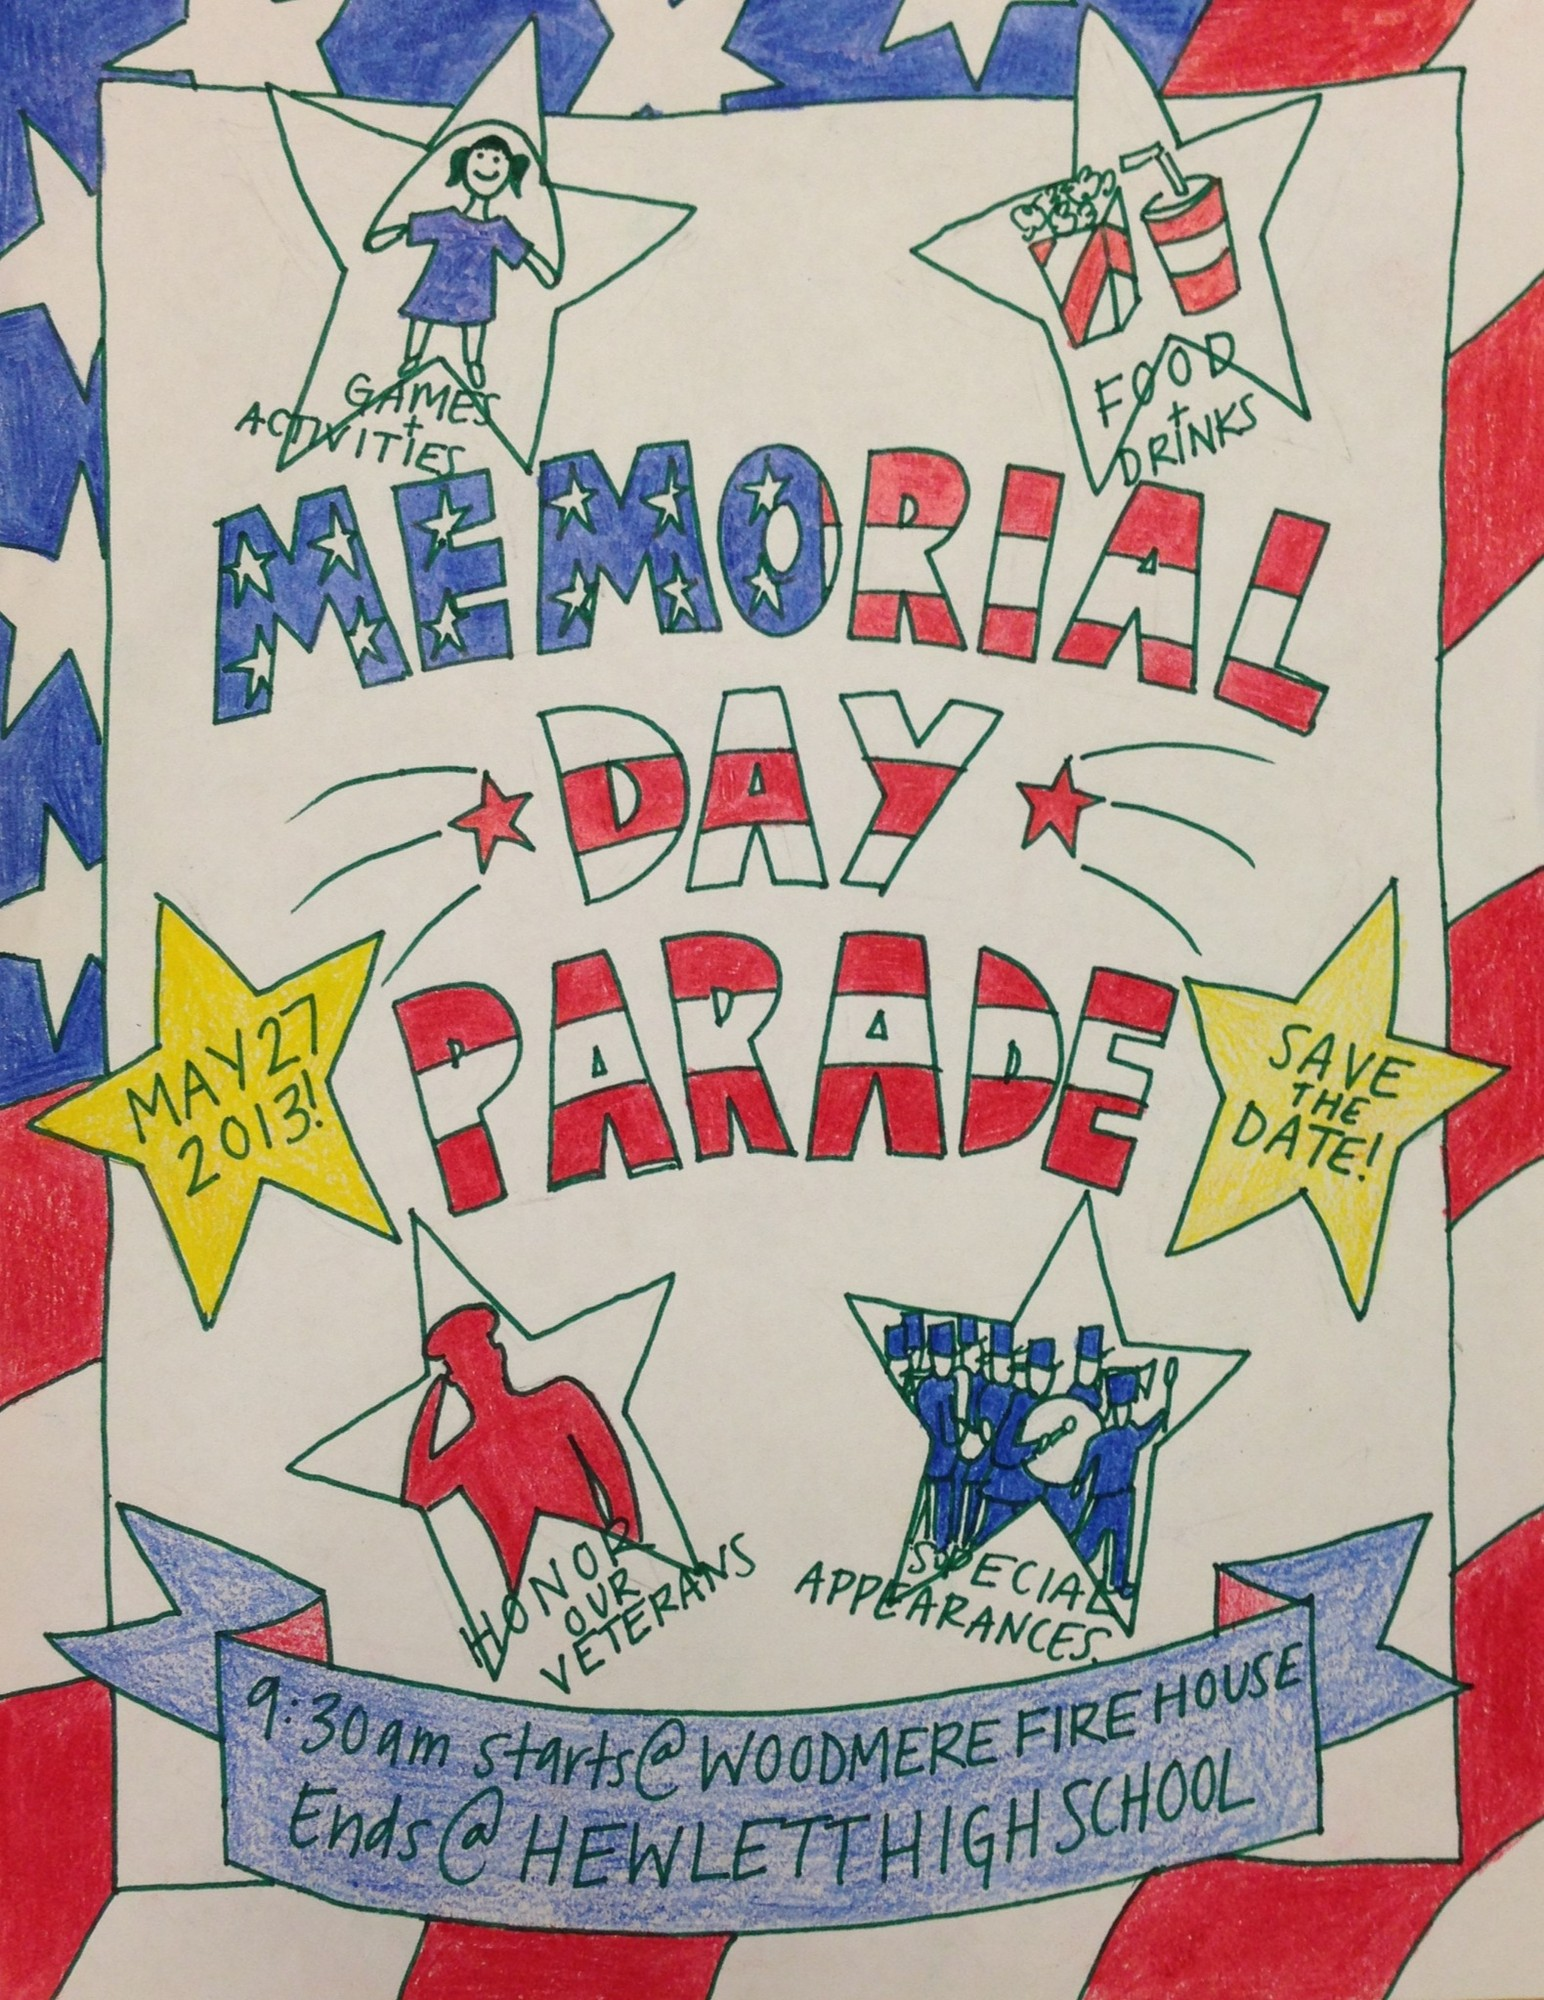 Hewlett High School sophomore Talei Tarakinikini created the Memorial Day parade poster with red, white and blue to make it patriotic and eye-catching.